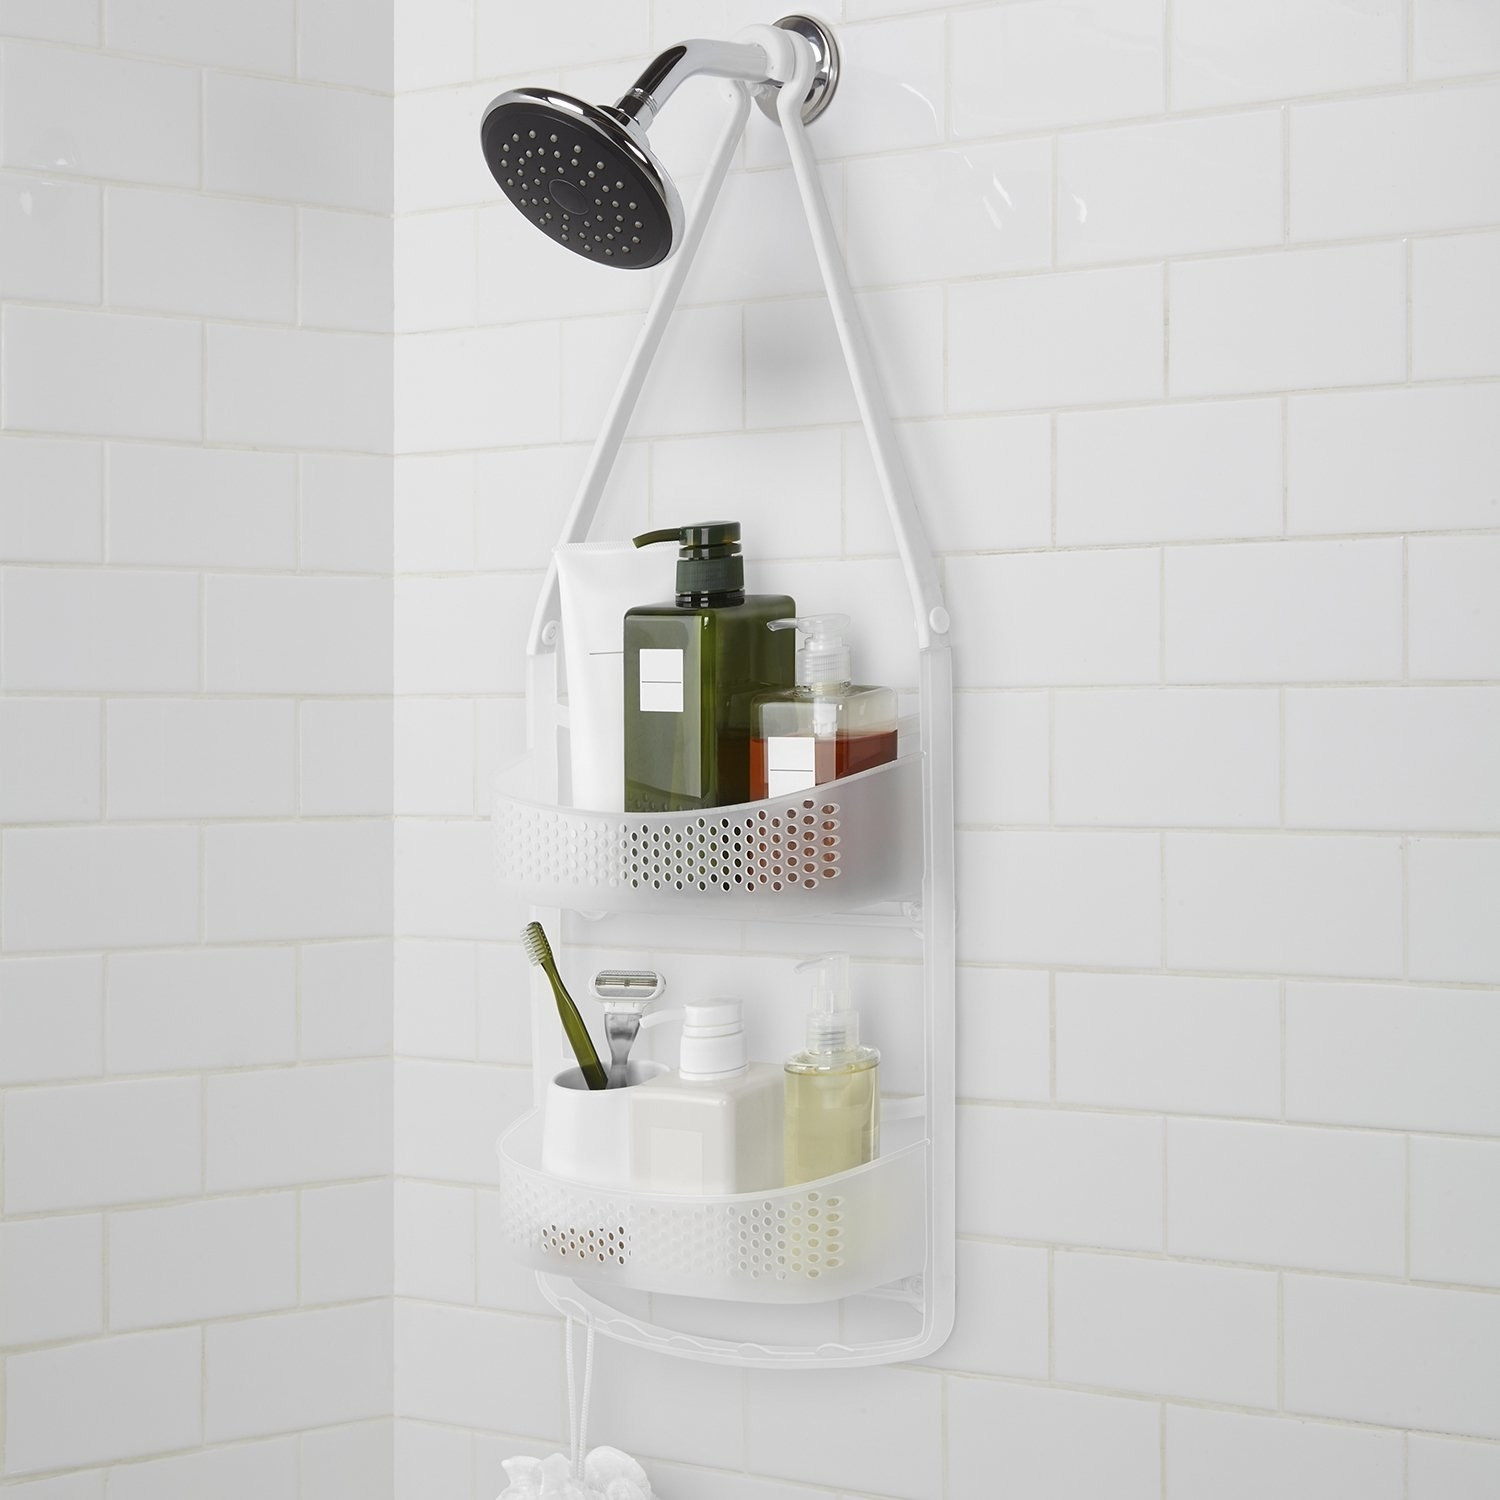 A product-filled caddy hung up on a shower head